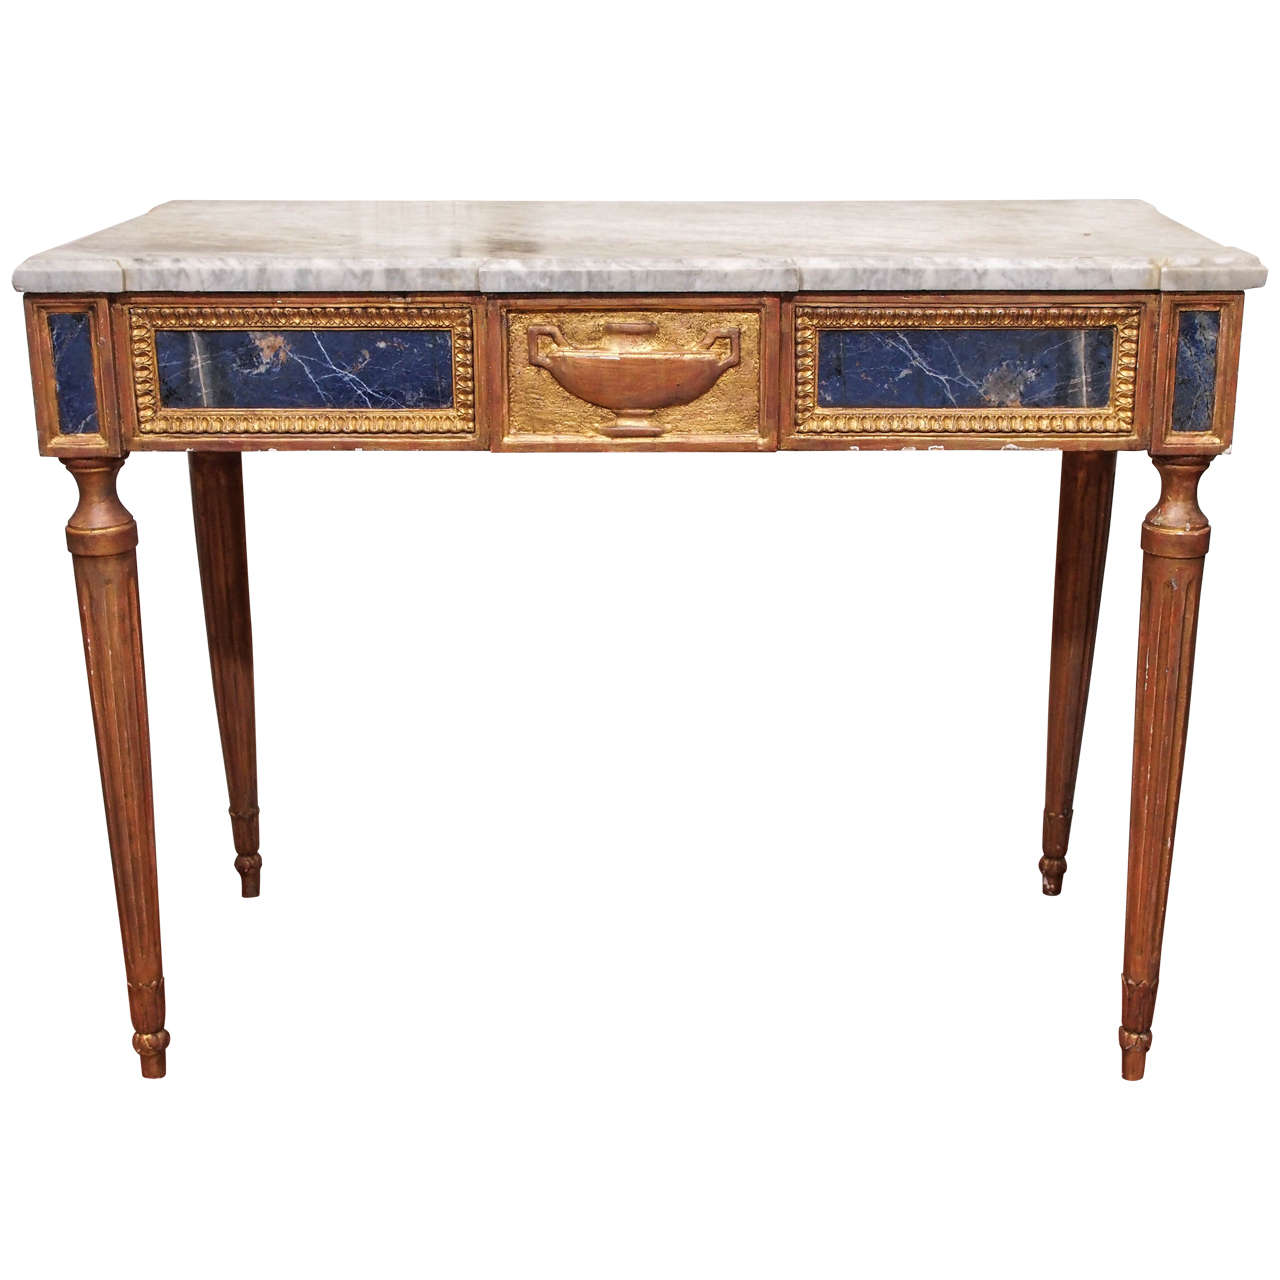 italian louis xvi console table with lapis lazuli panels. Black Bedroom Furniture Sets. Home Design Ideas